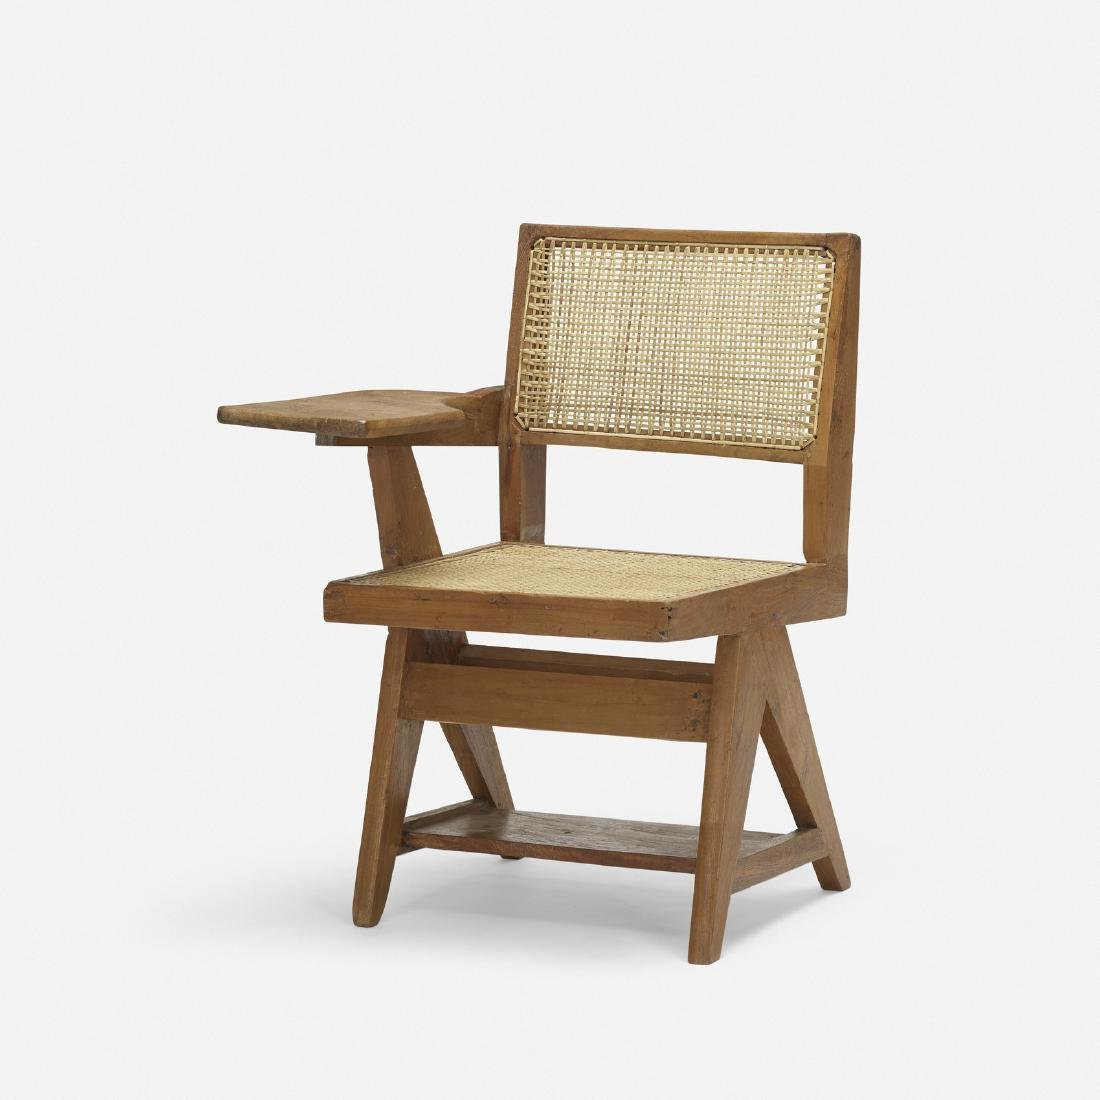 Pierre Jeanneret, writing chair from Chandigarh